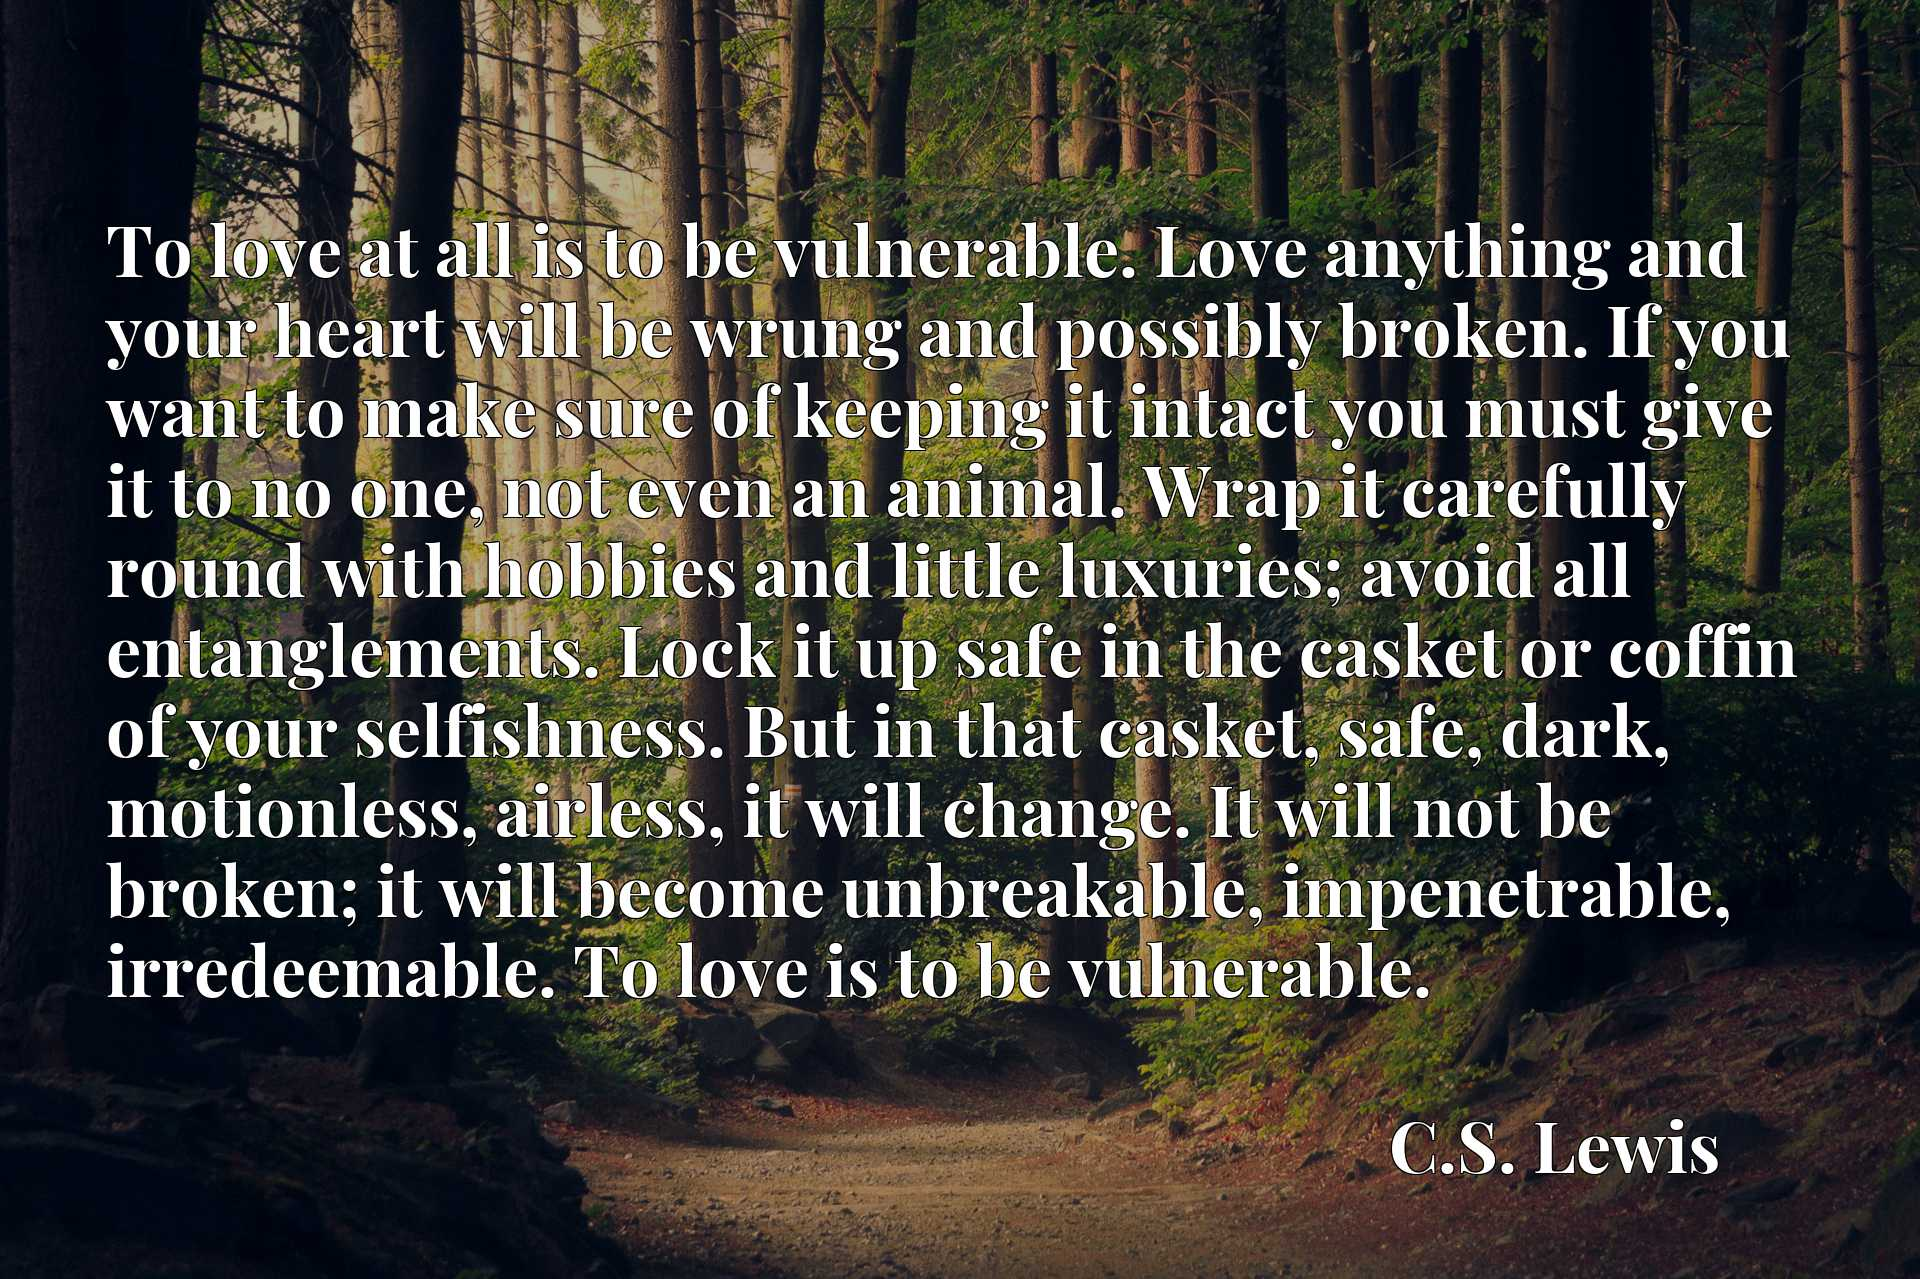 To love at all is to be vulnerable. Love anything and your heart will be wrung and possibly broken. If you want to make sure of keeping it intact you must give it to no one, not even an animal. Wrap it carefully round with hobbies and little luxuries; avoid all entanglements. Lock it up safe in the casket or coffin of your selfishness. But in that casket, safe, dark, motionless, airless, it will change. It will not be broken; it will become unbreakable, impenetrable, irredeemable. To love is to be vulnerable.